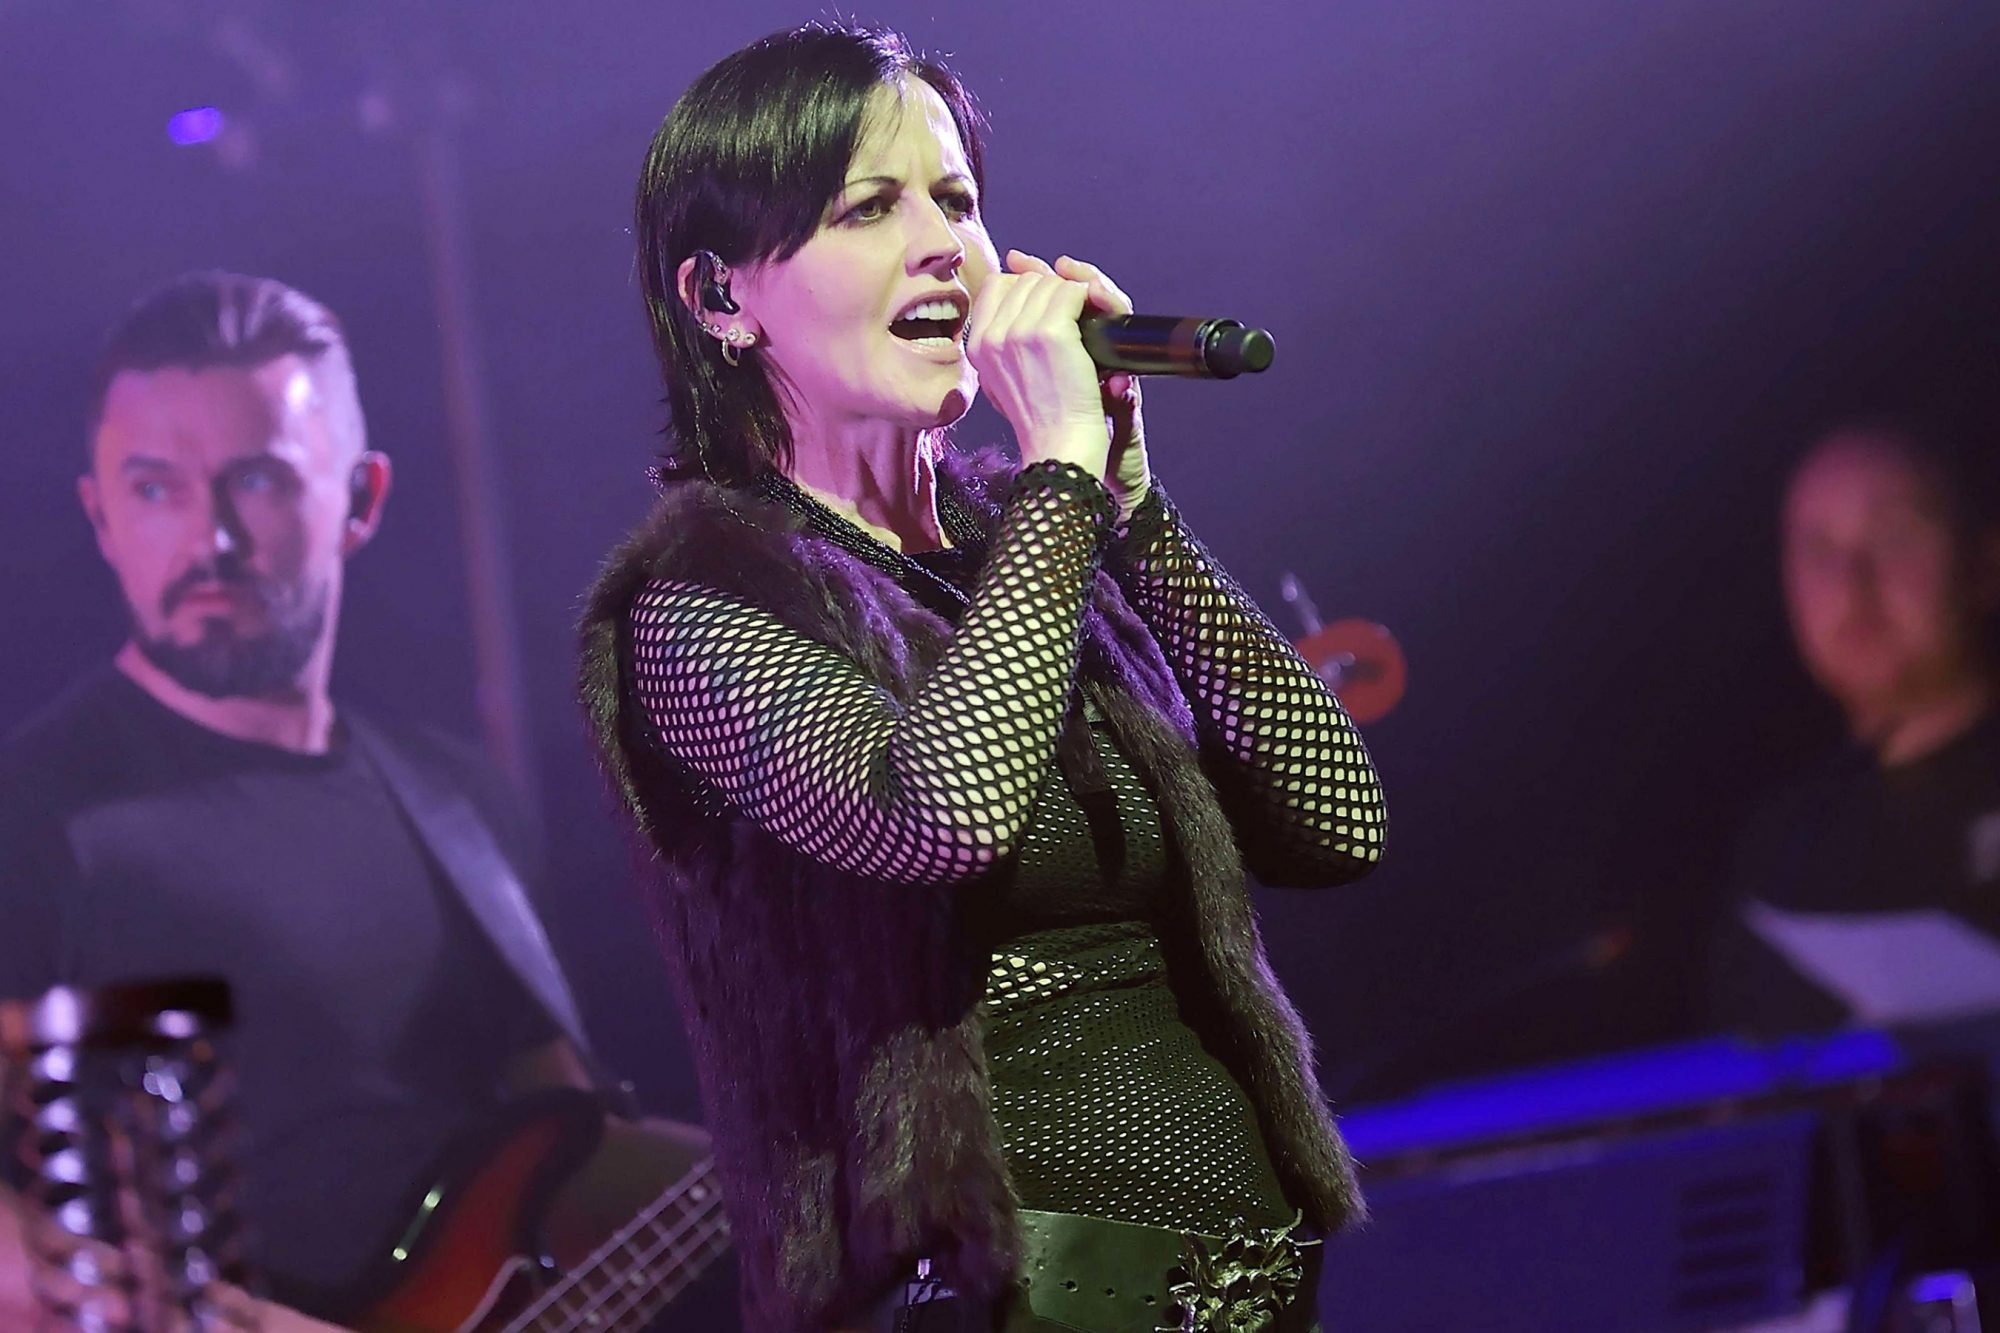 The Cranberries in concert, Olympia. Paris, France - 04 May 2017